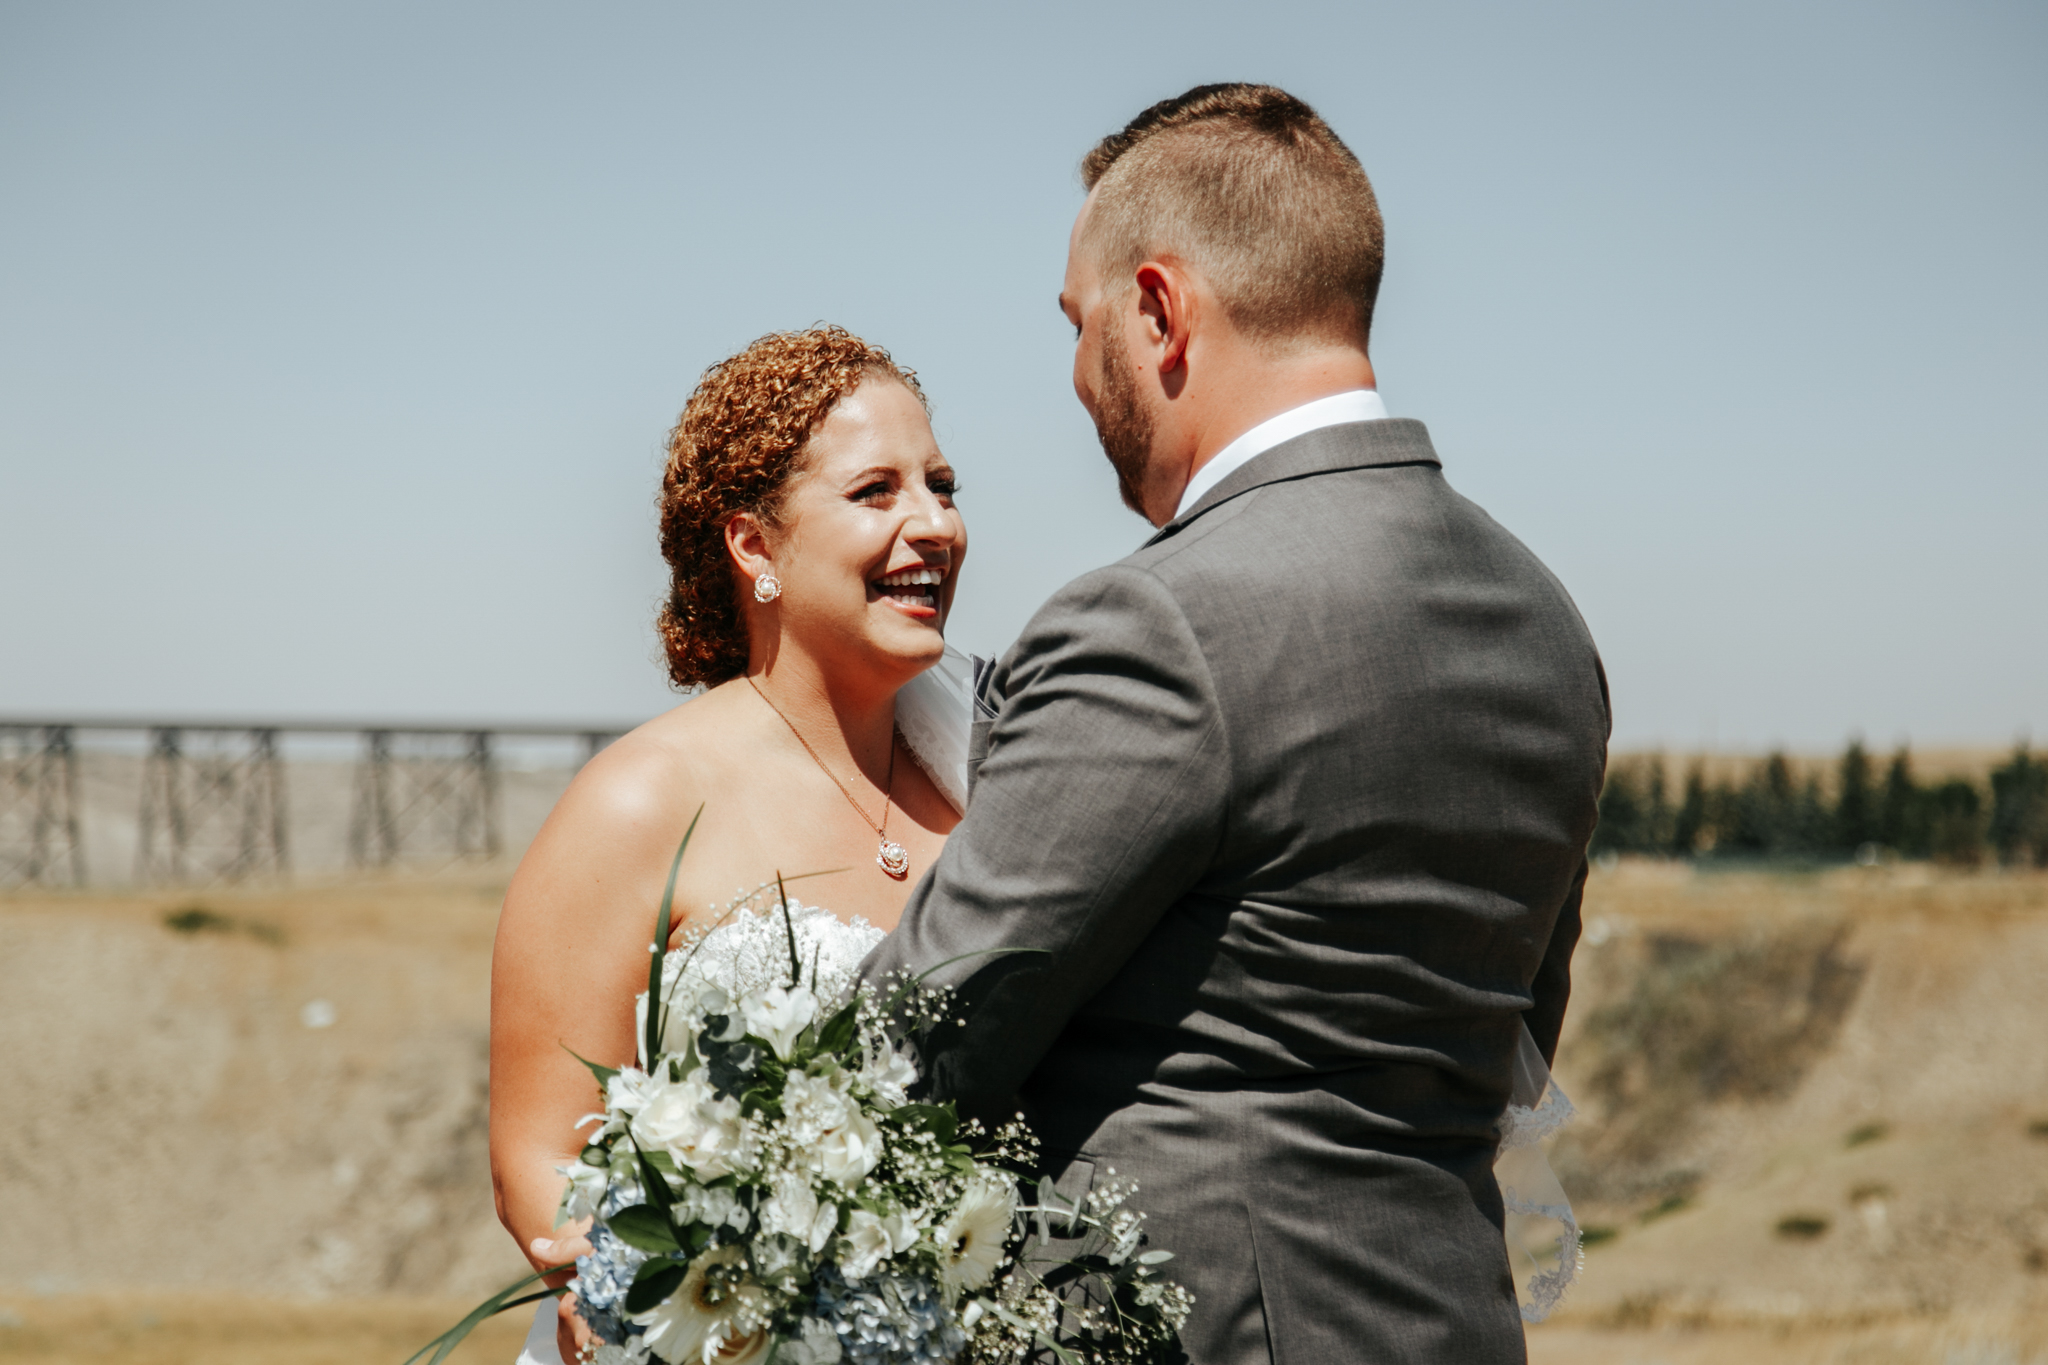 lethbridge-wedding-photographer-love-and-be-loved-photography-trent-danielle-galt-reception-picture-image-photo-26.jpg